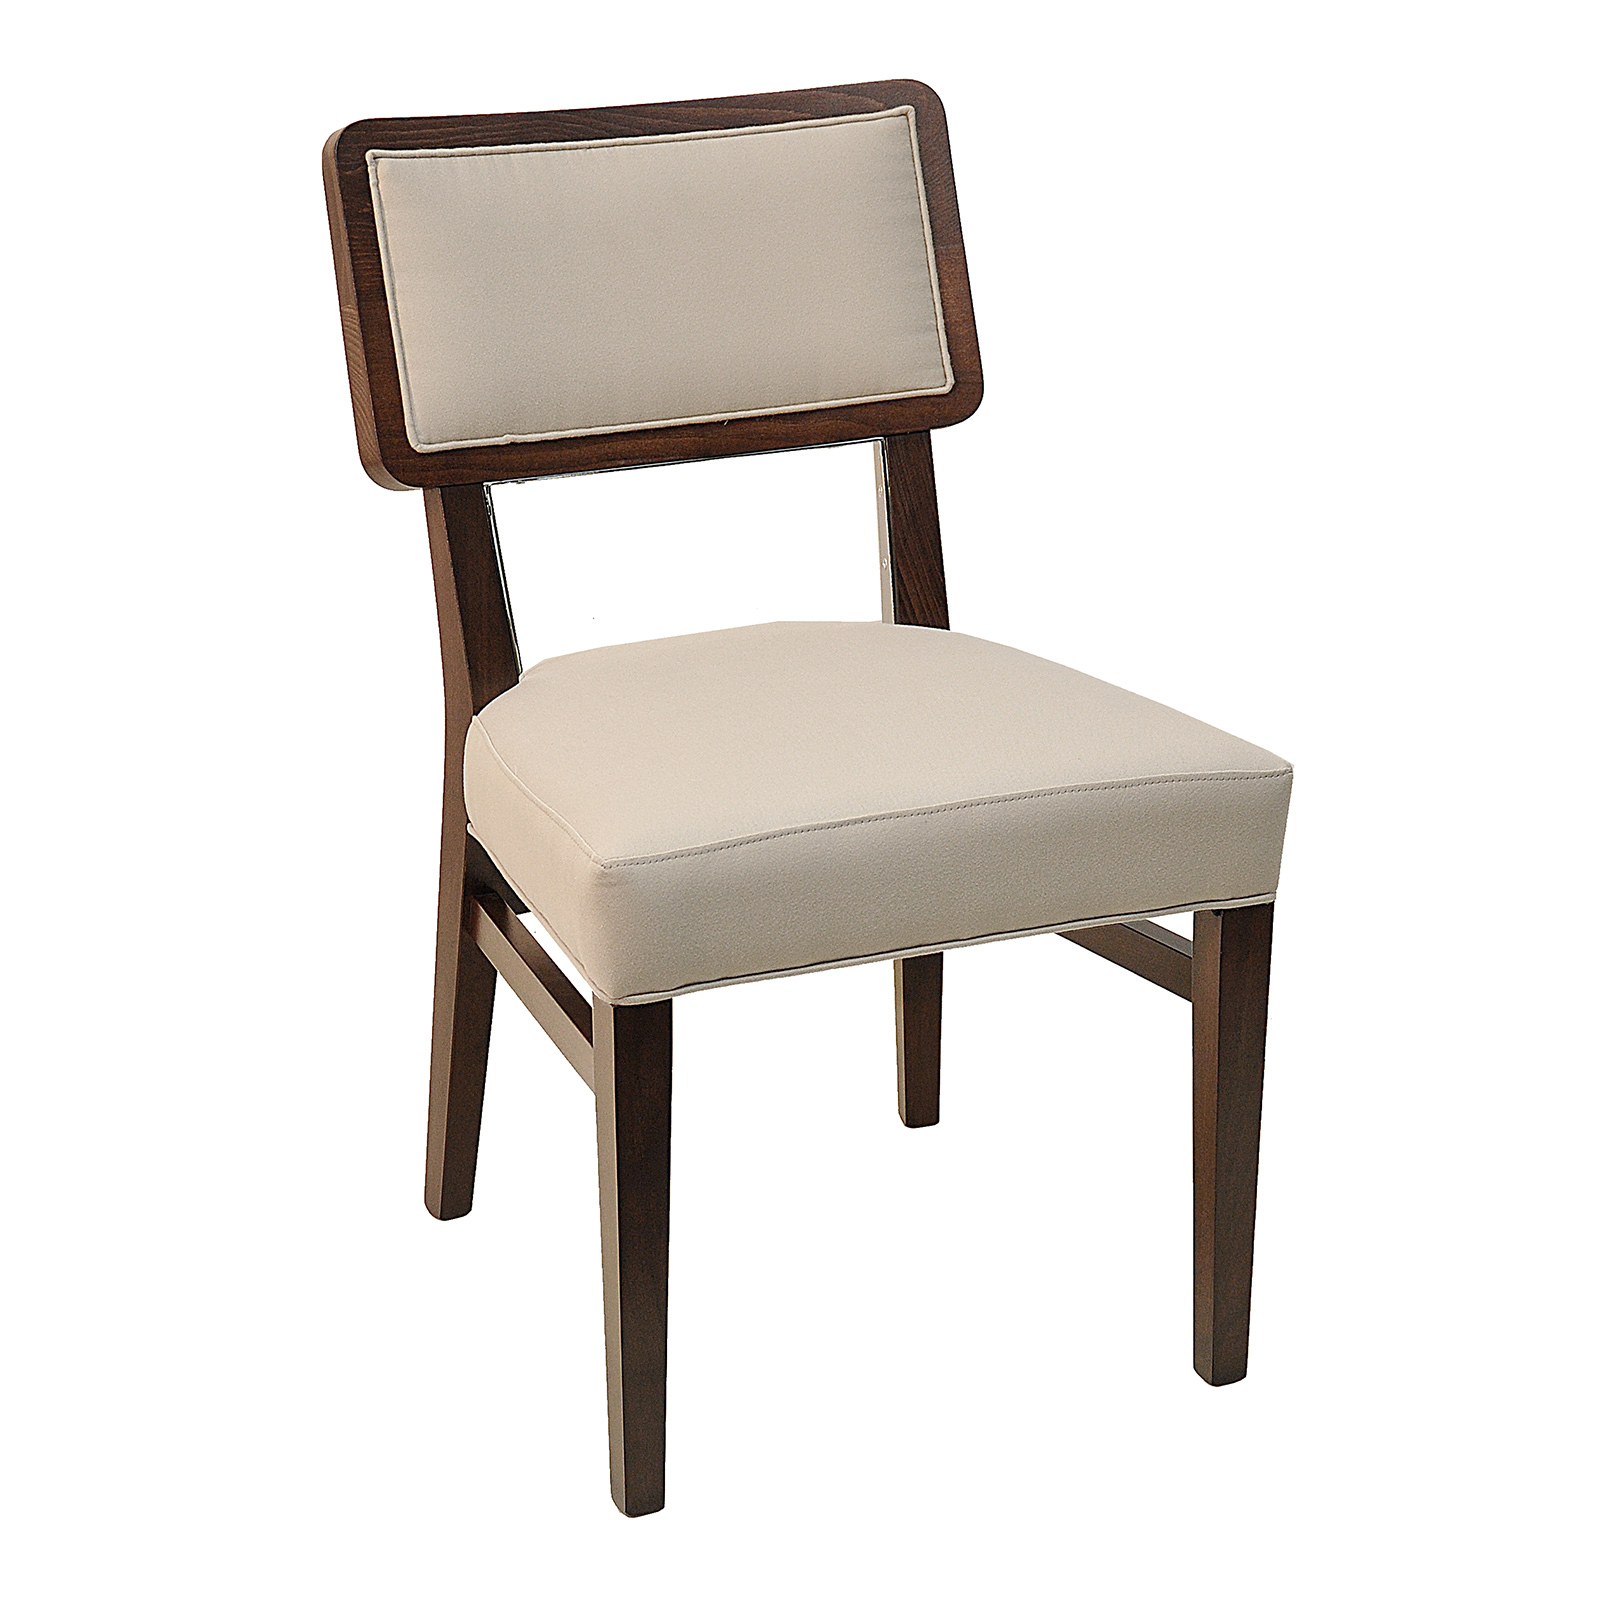 Florida Seating CN-CHRISTINES GR1 chair, side, indoor